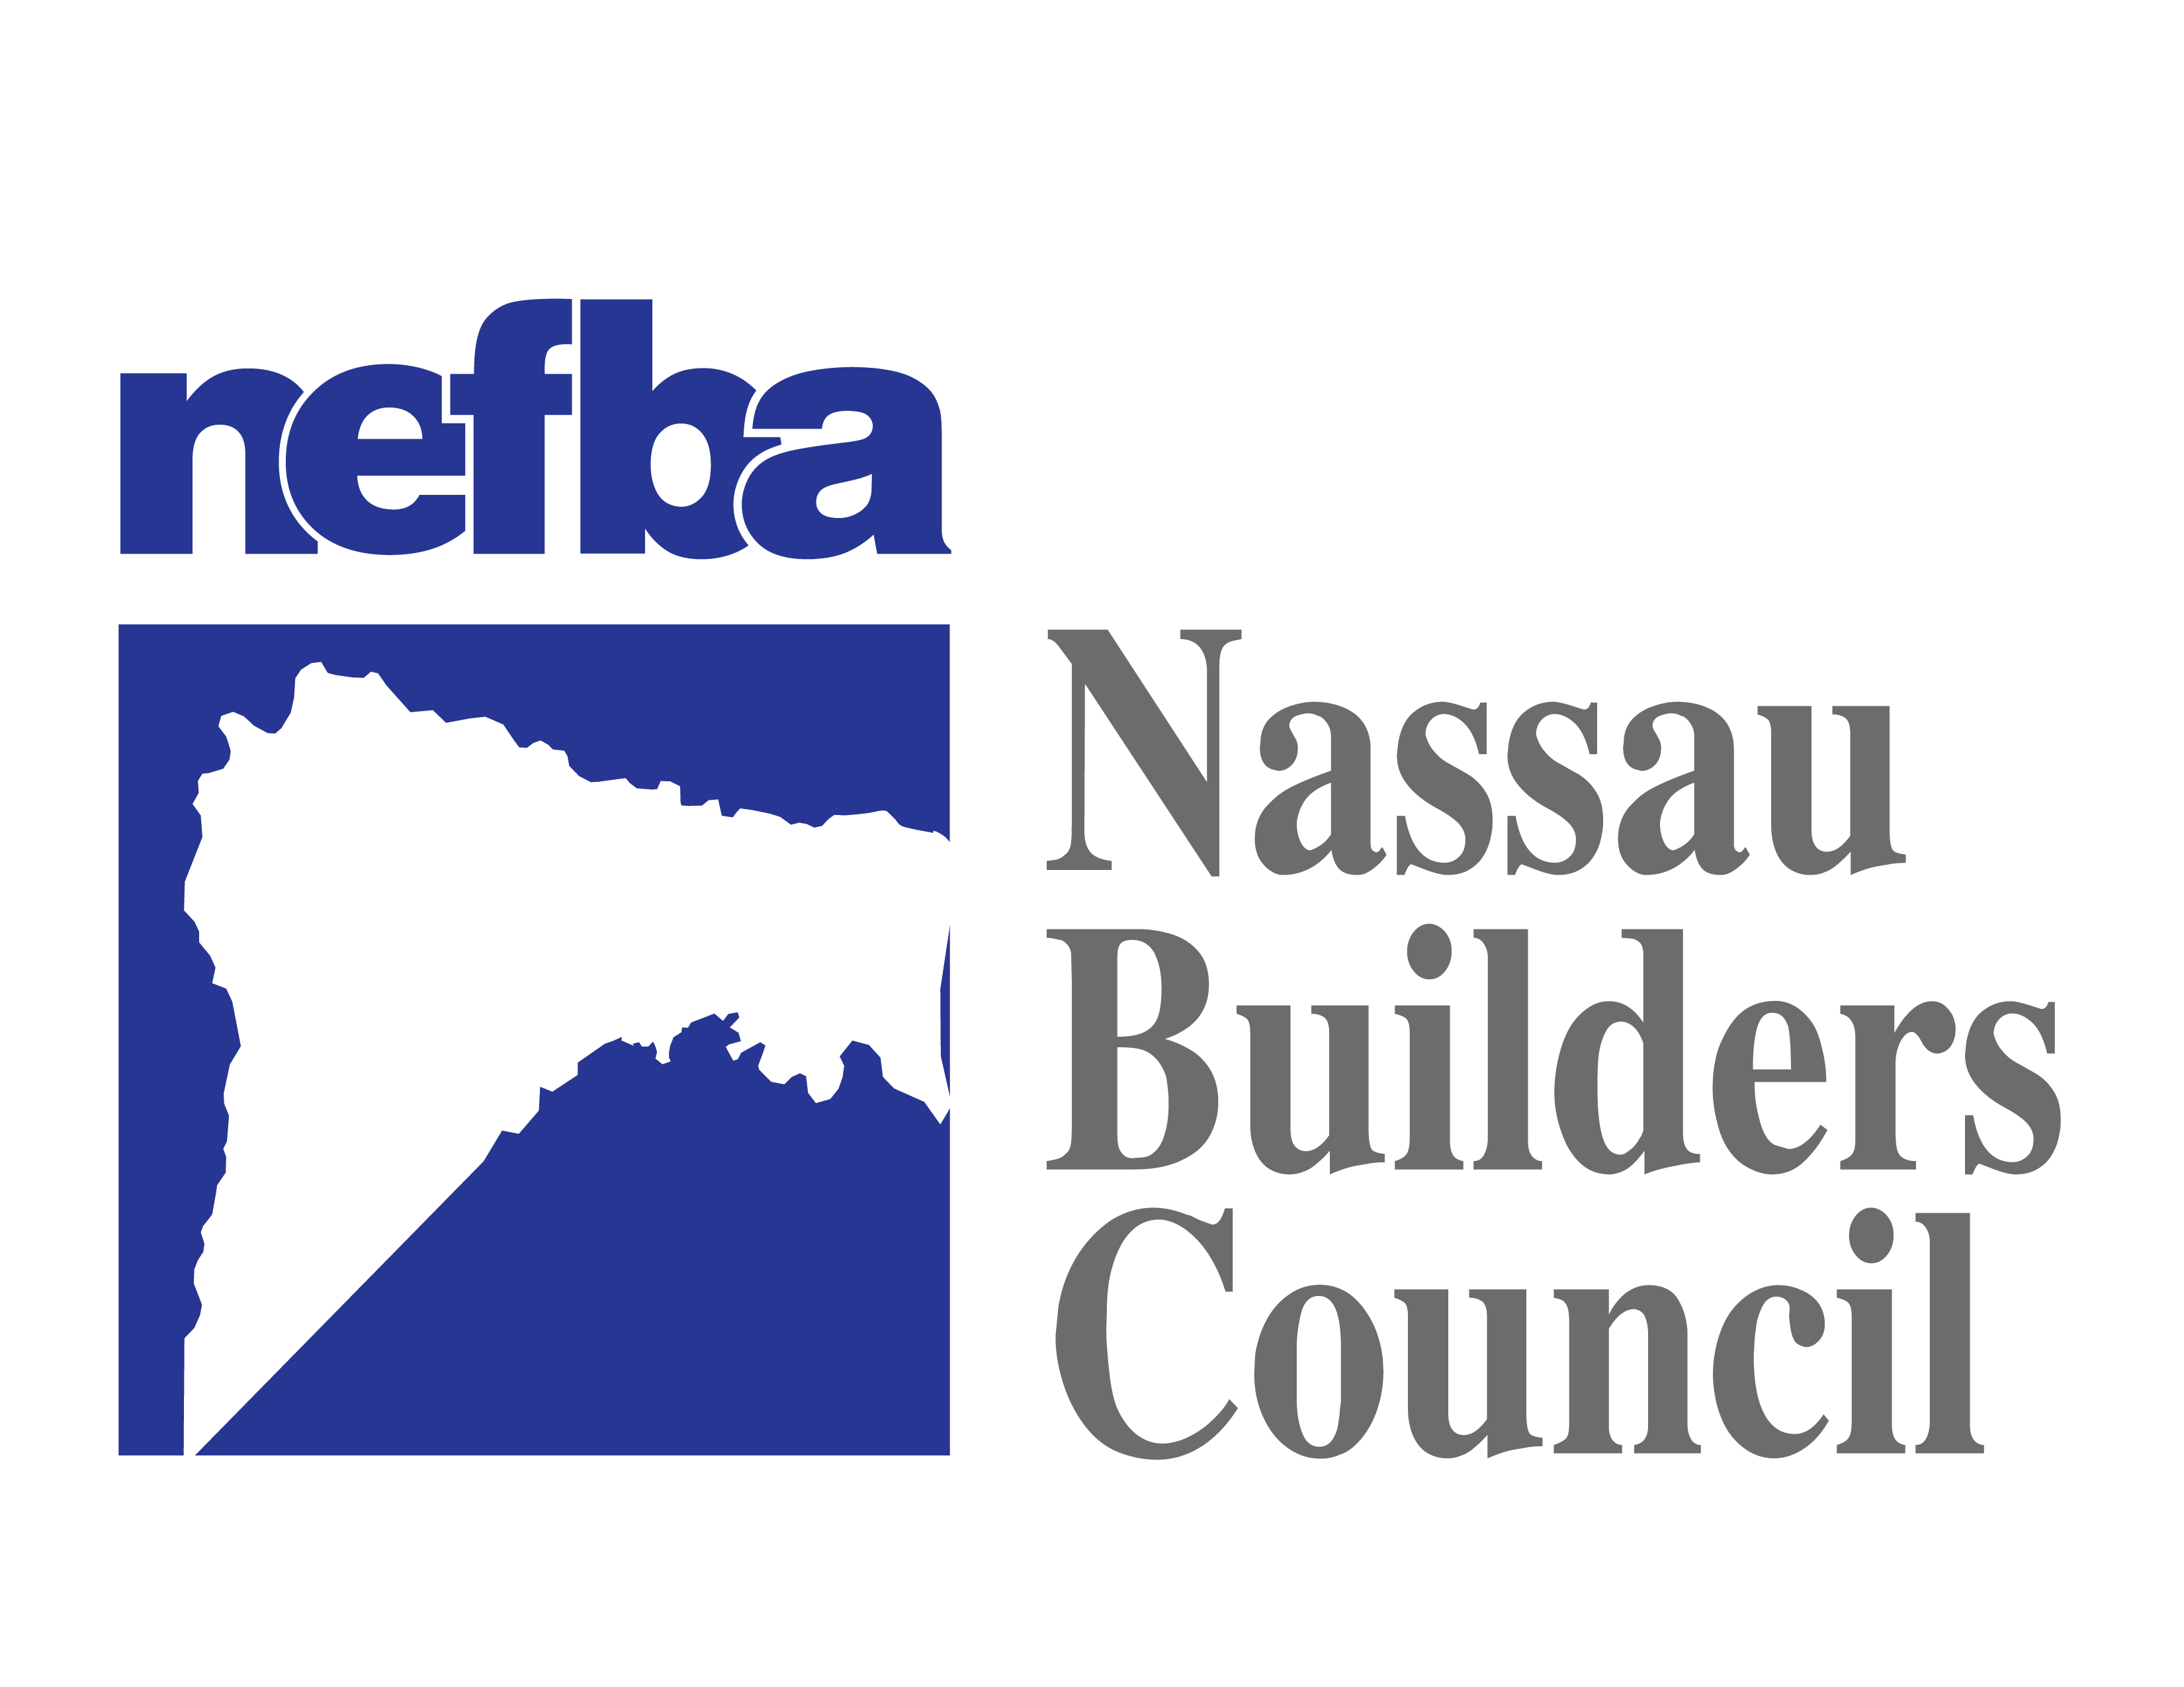 nassaubuilderscouncil-logo-blue